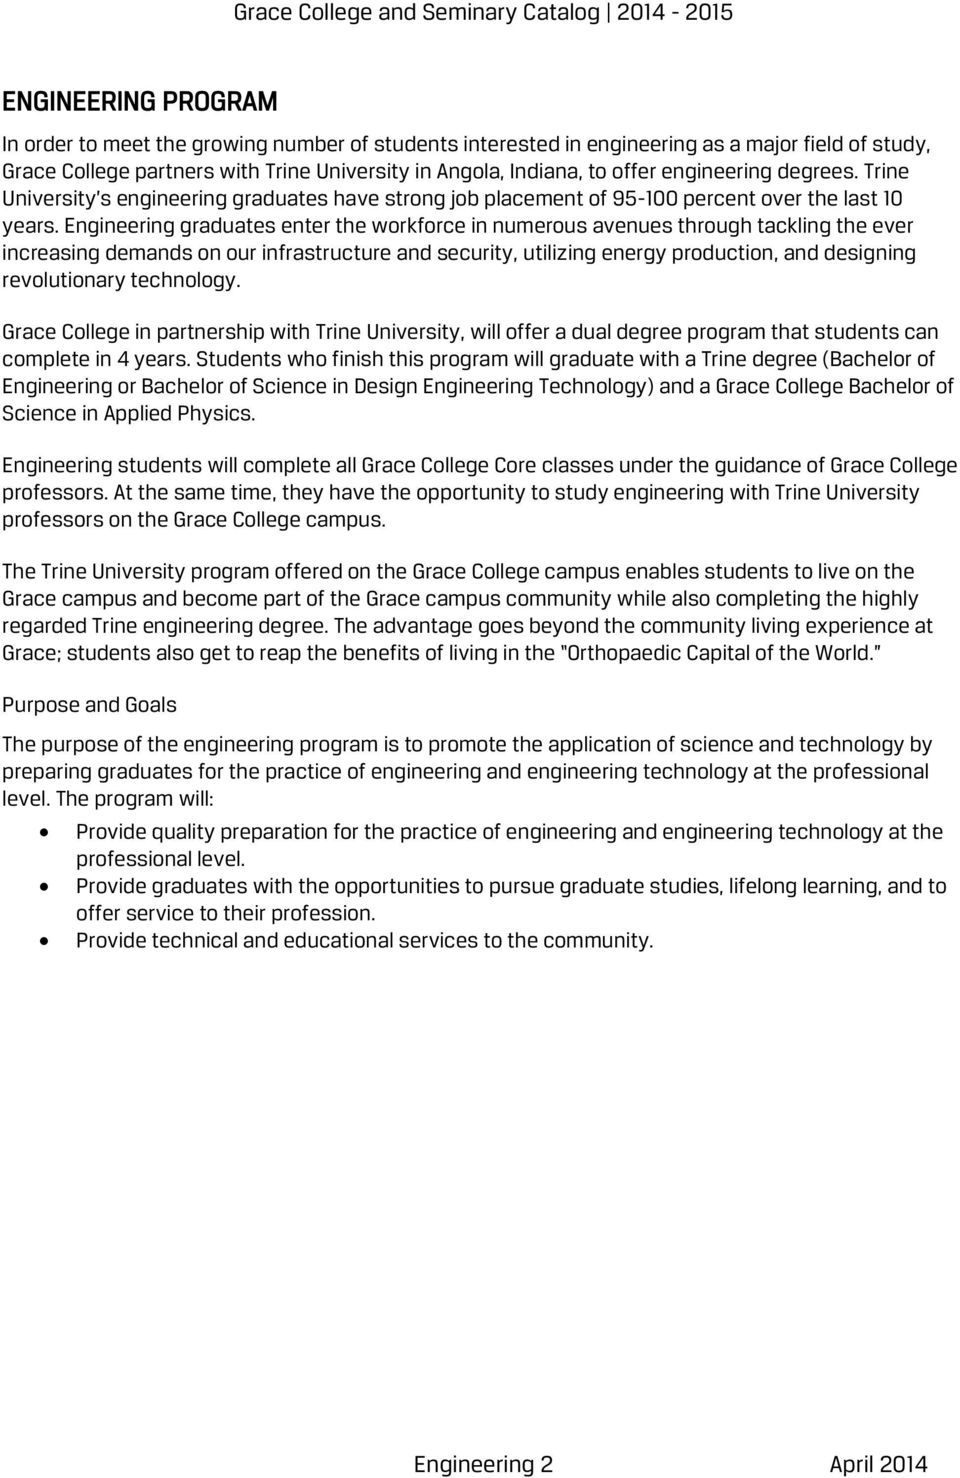 GRACE COLLEGE AND SEMINARY CATALOG Engineering Program in